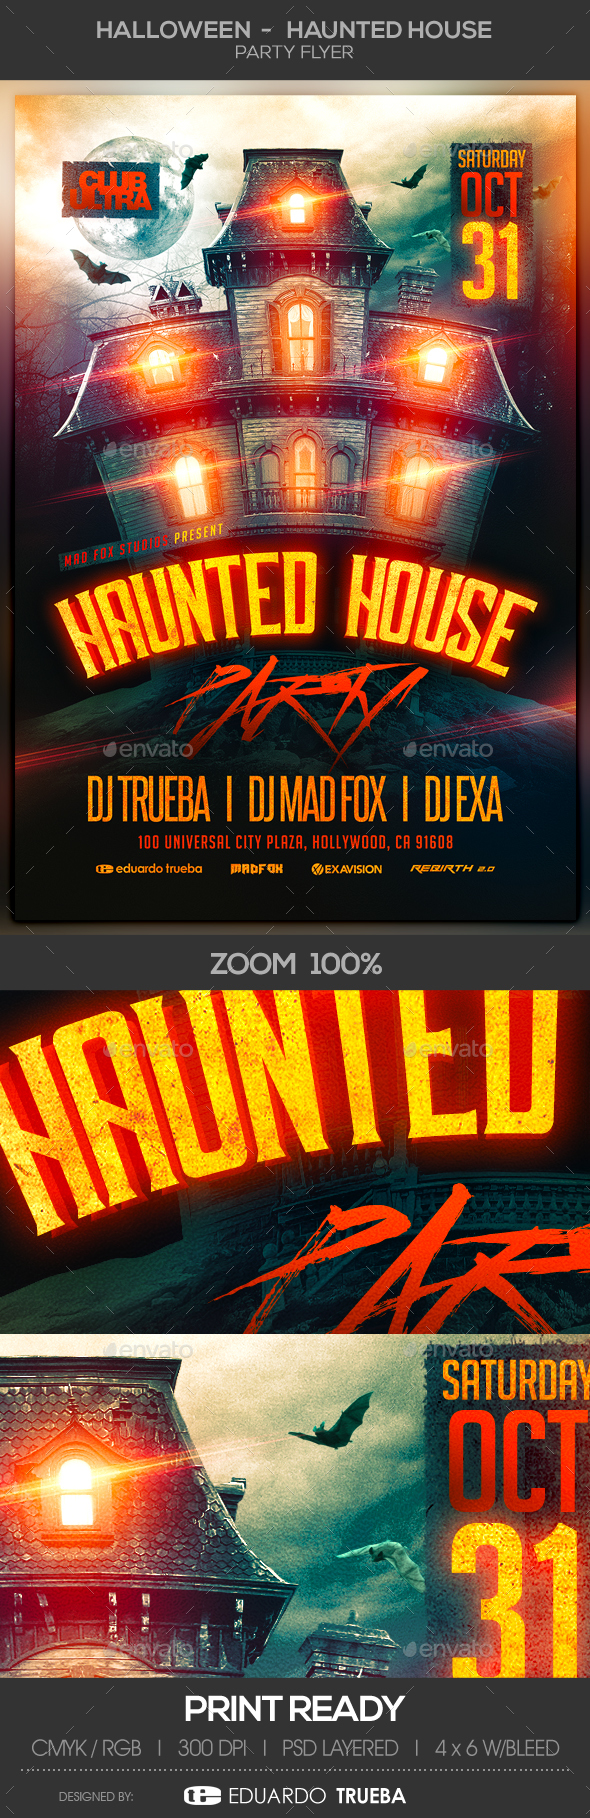 Halloween Haunted House Party Flyer - Clubs & Parties Events